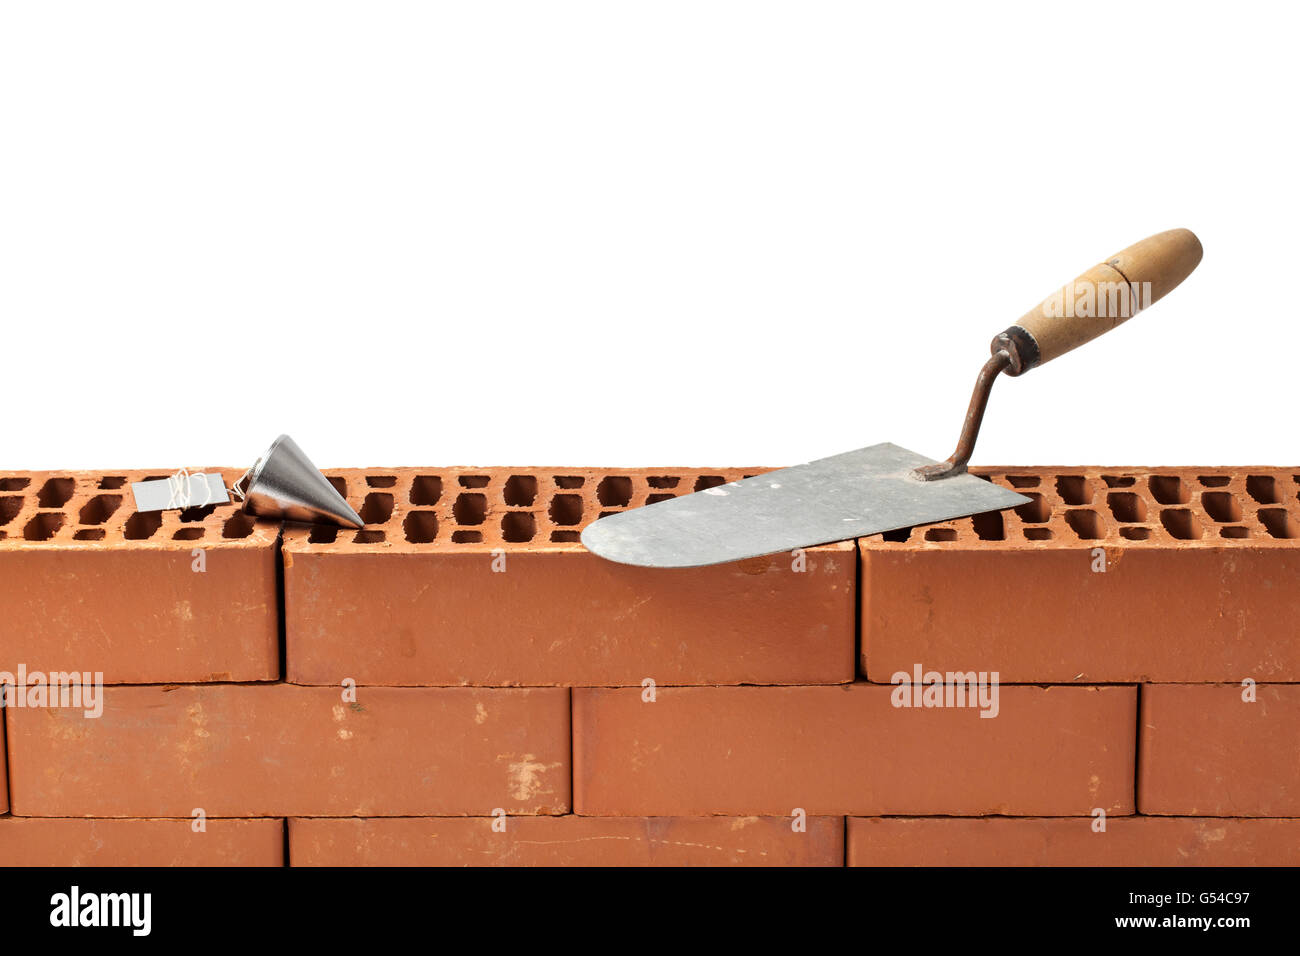 Construction tools trowel and plumb bob left on a new brickwork isolated on white. Stock Photo